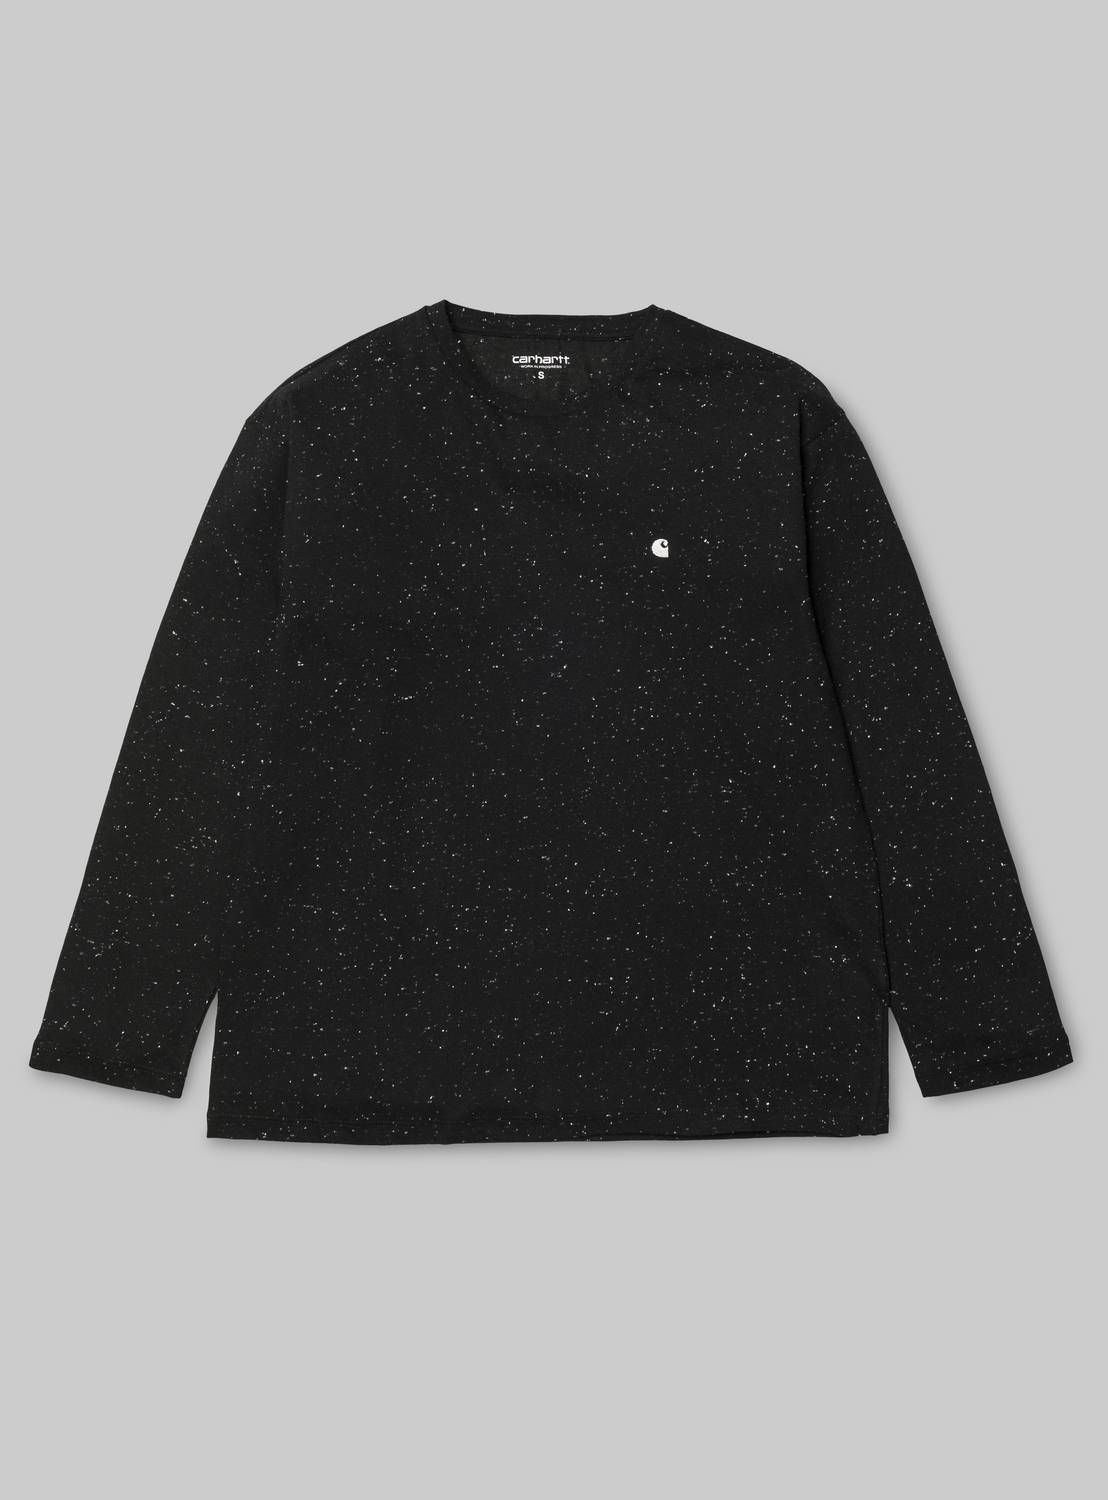 sold worldwide on sale buy Shop the Carhartt WIP W' L/S Neps Chase T-Shirt from the ...